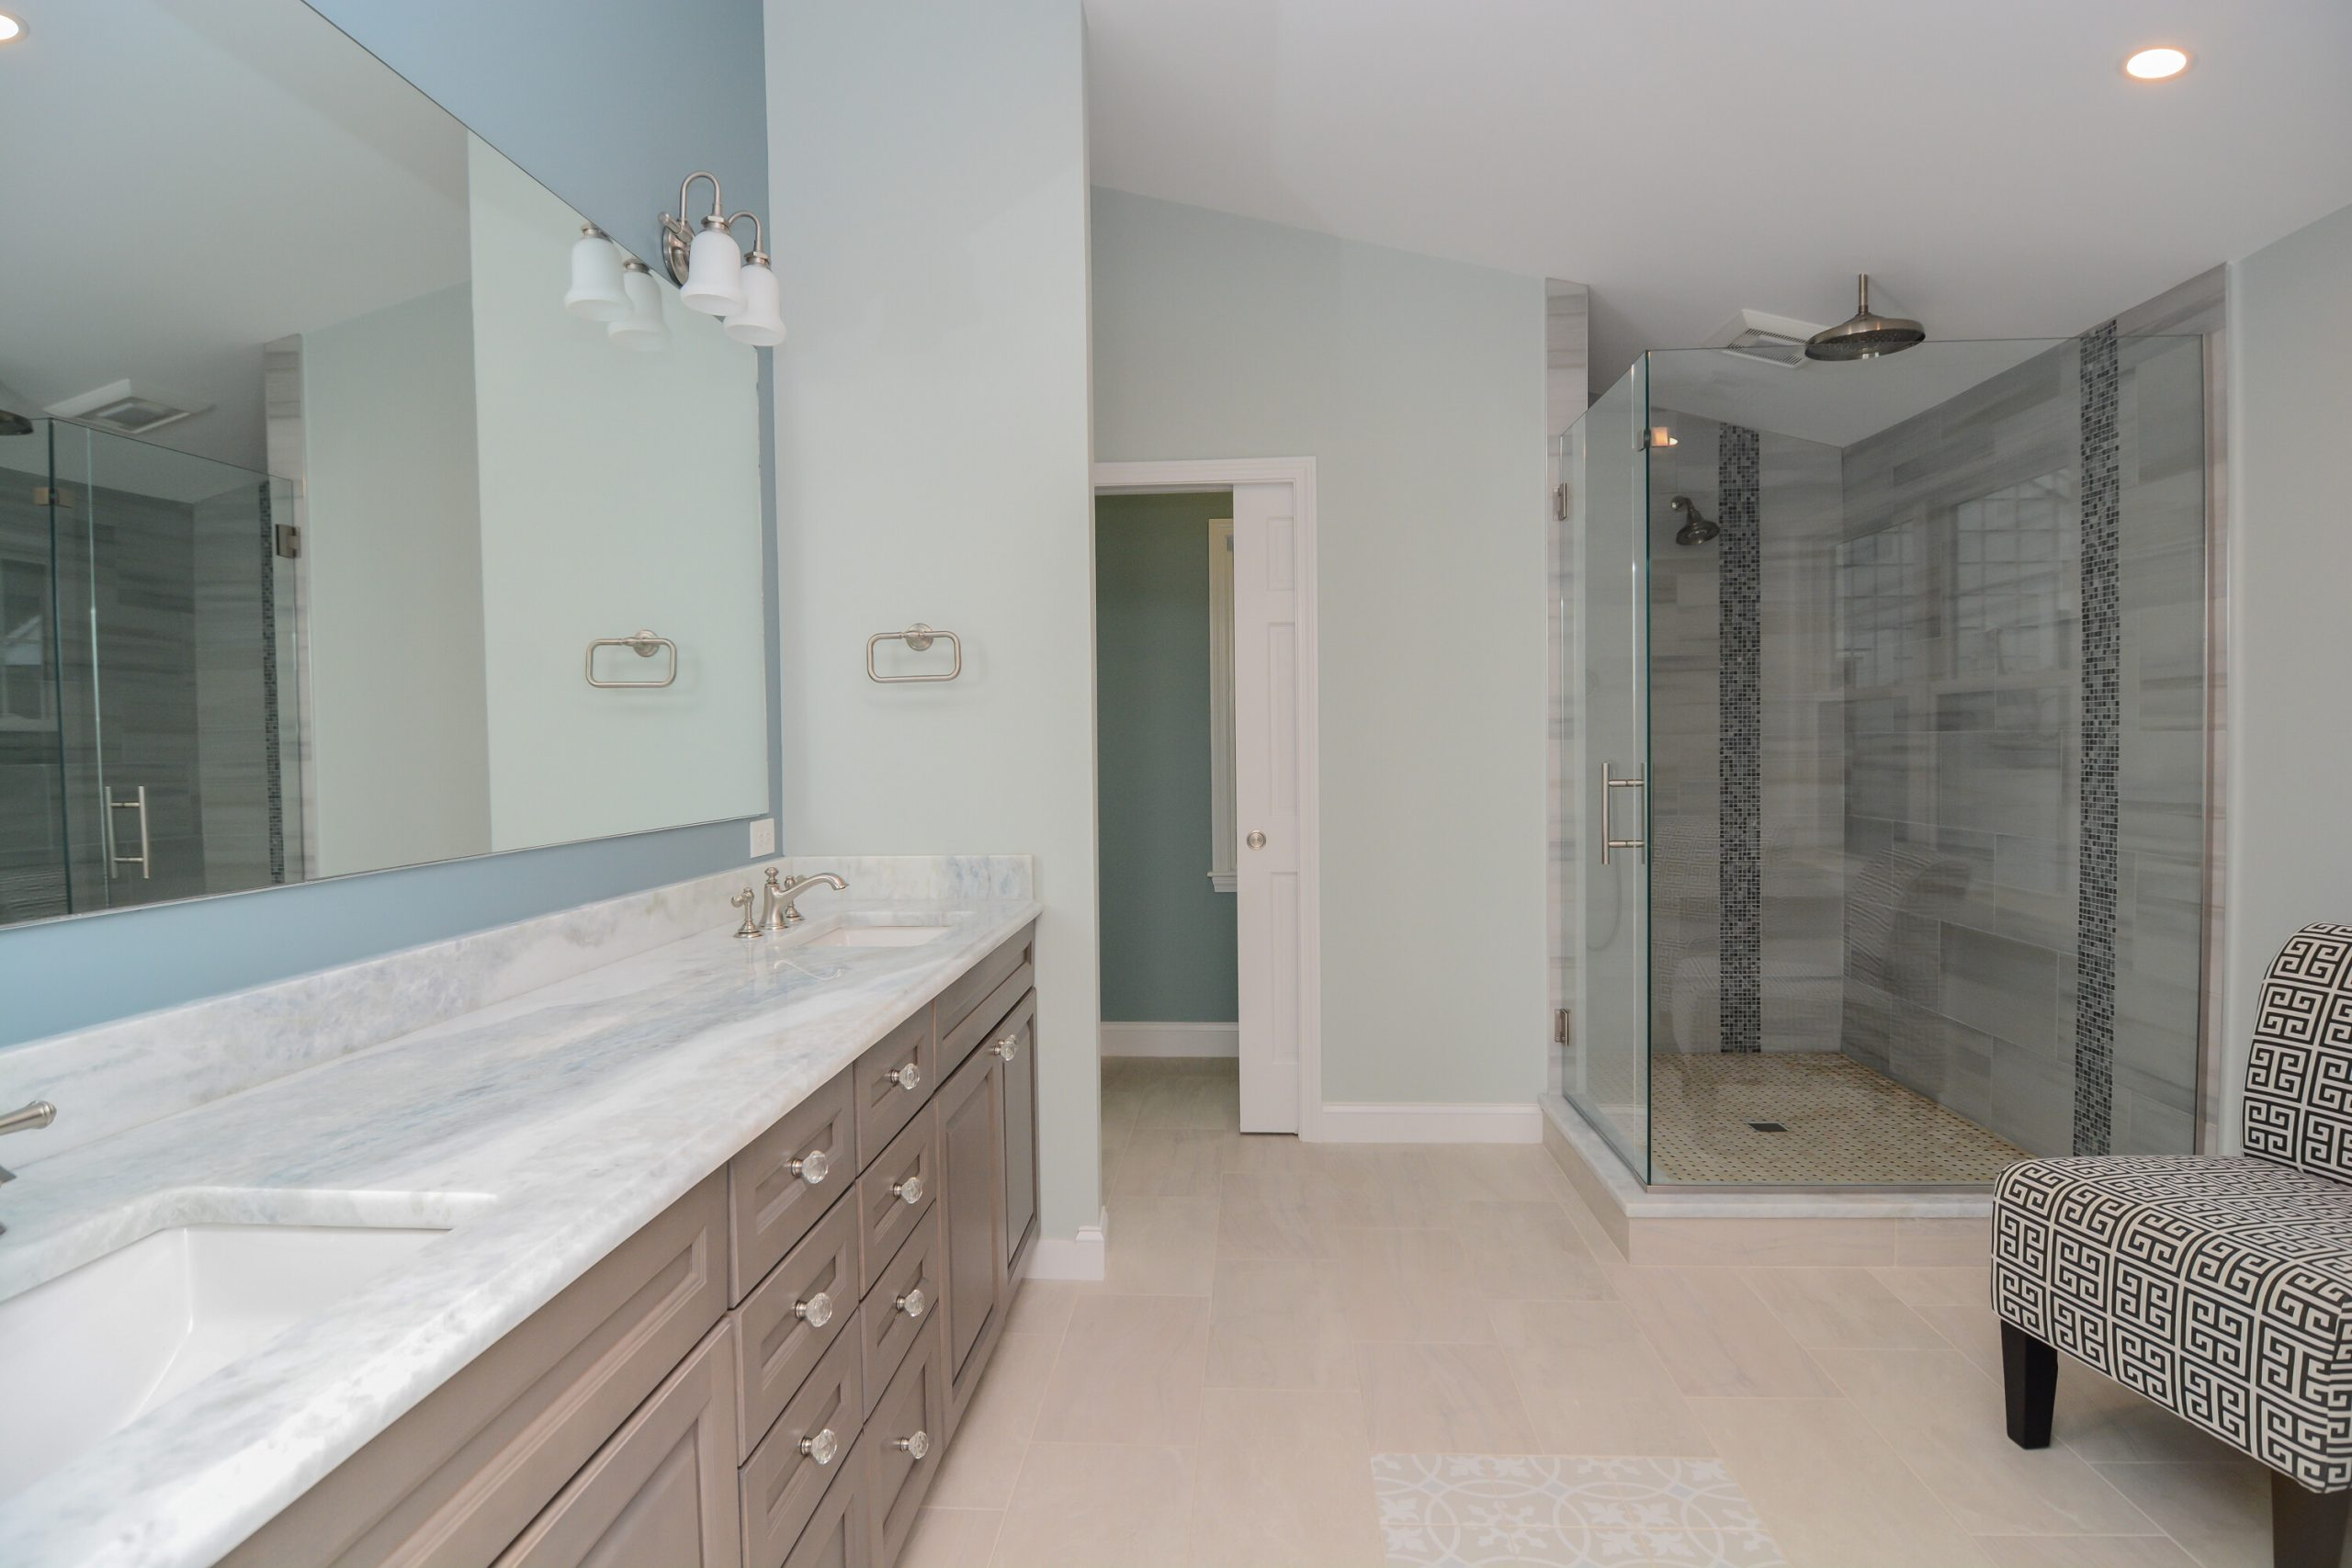 Design-Build Bathroom Remodel by Canty Brothers Construction